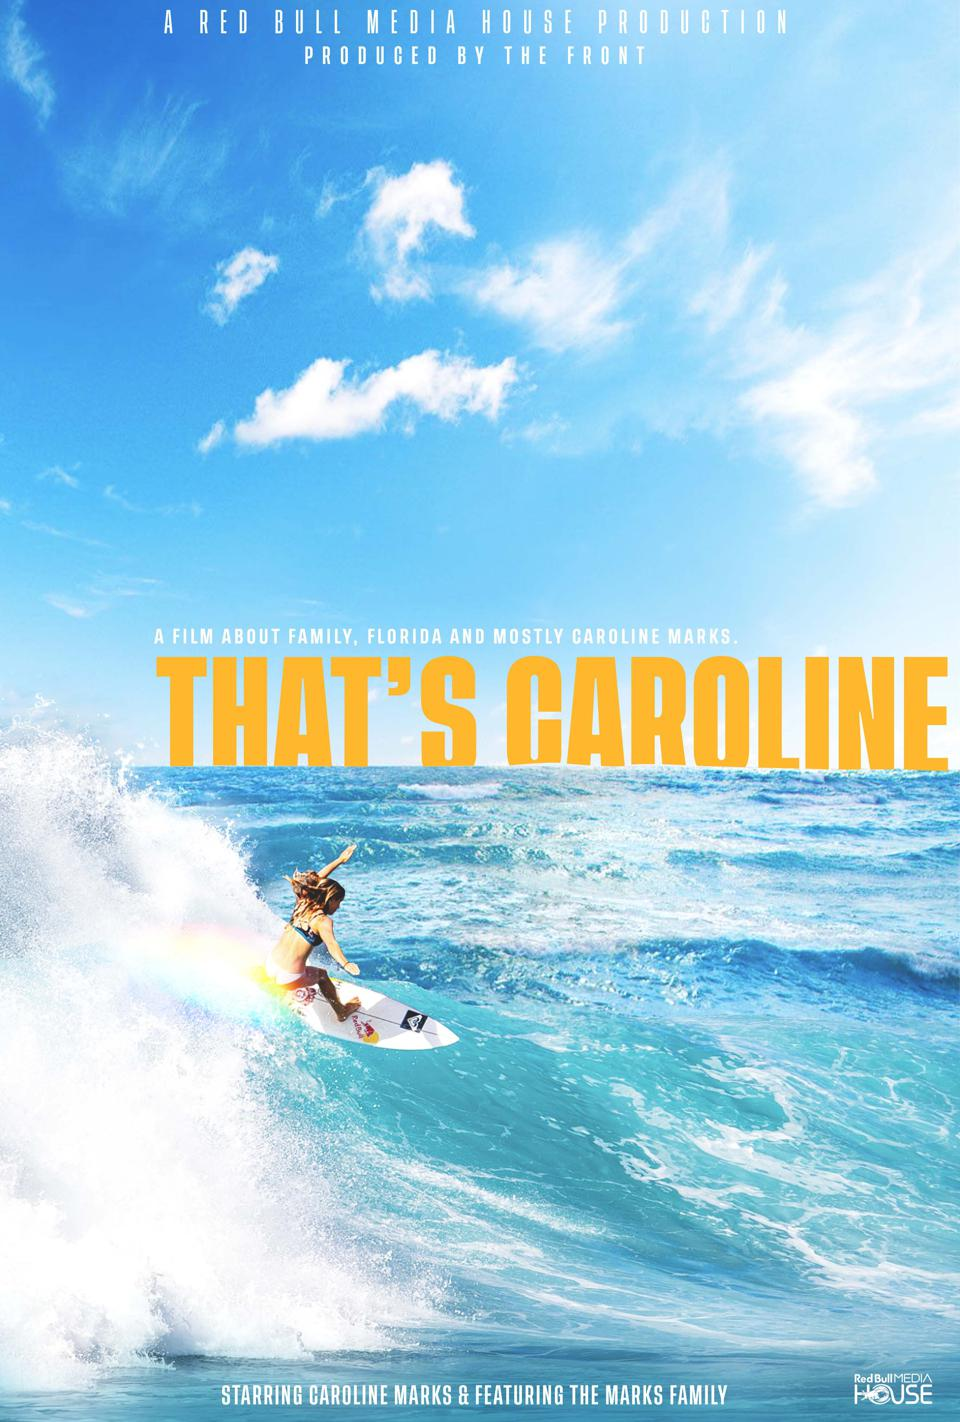 ″That's Caroline″ is a documentary about U.S. surfer and future Olympian Caroline Marks